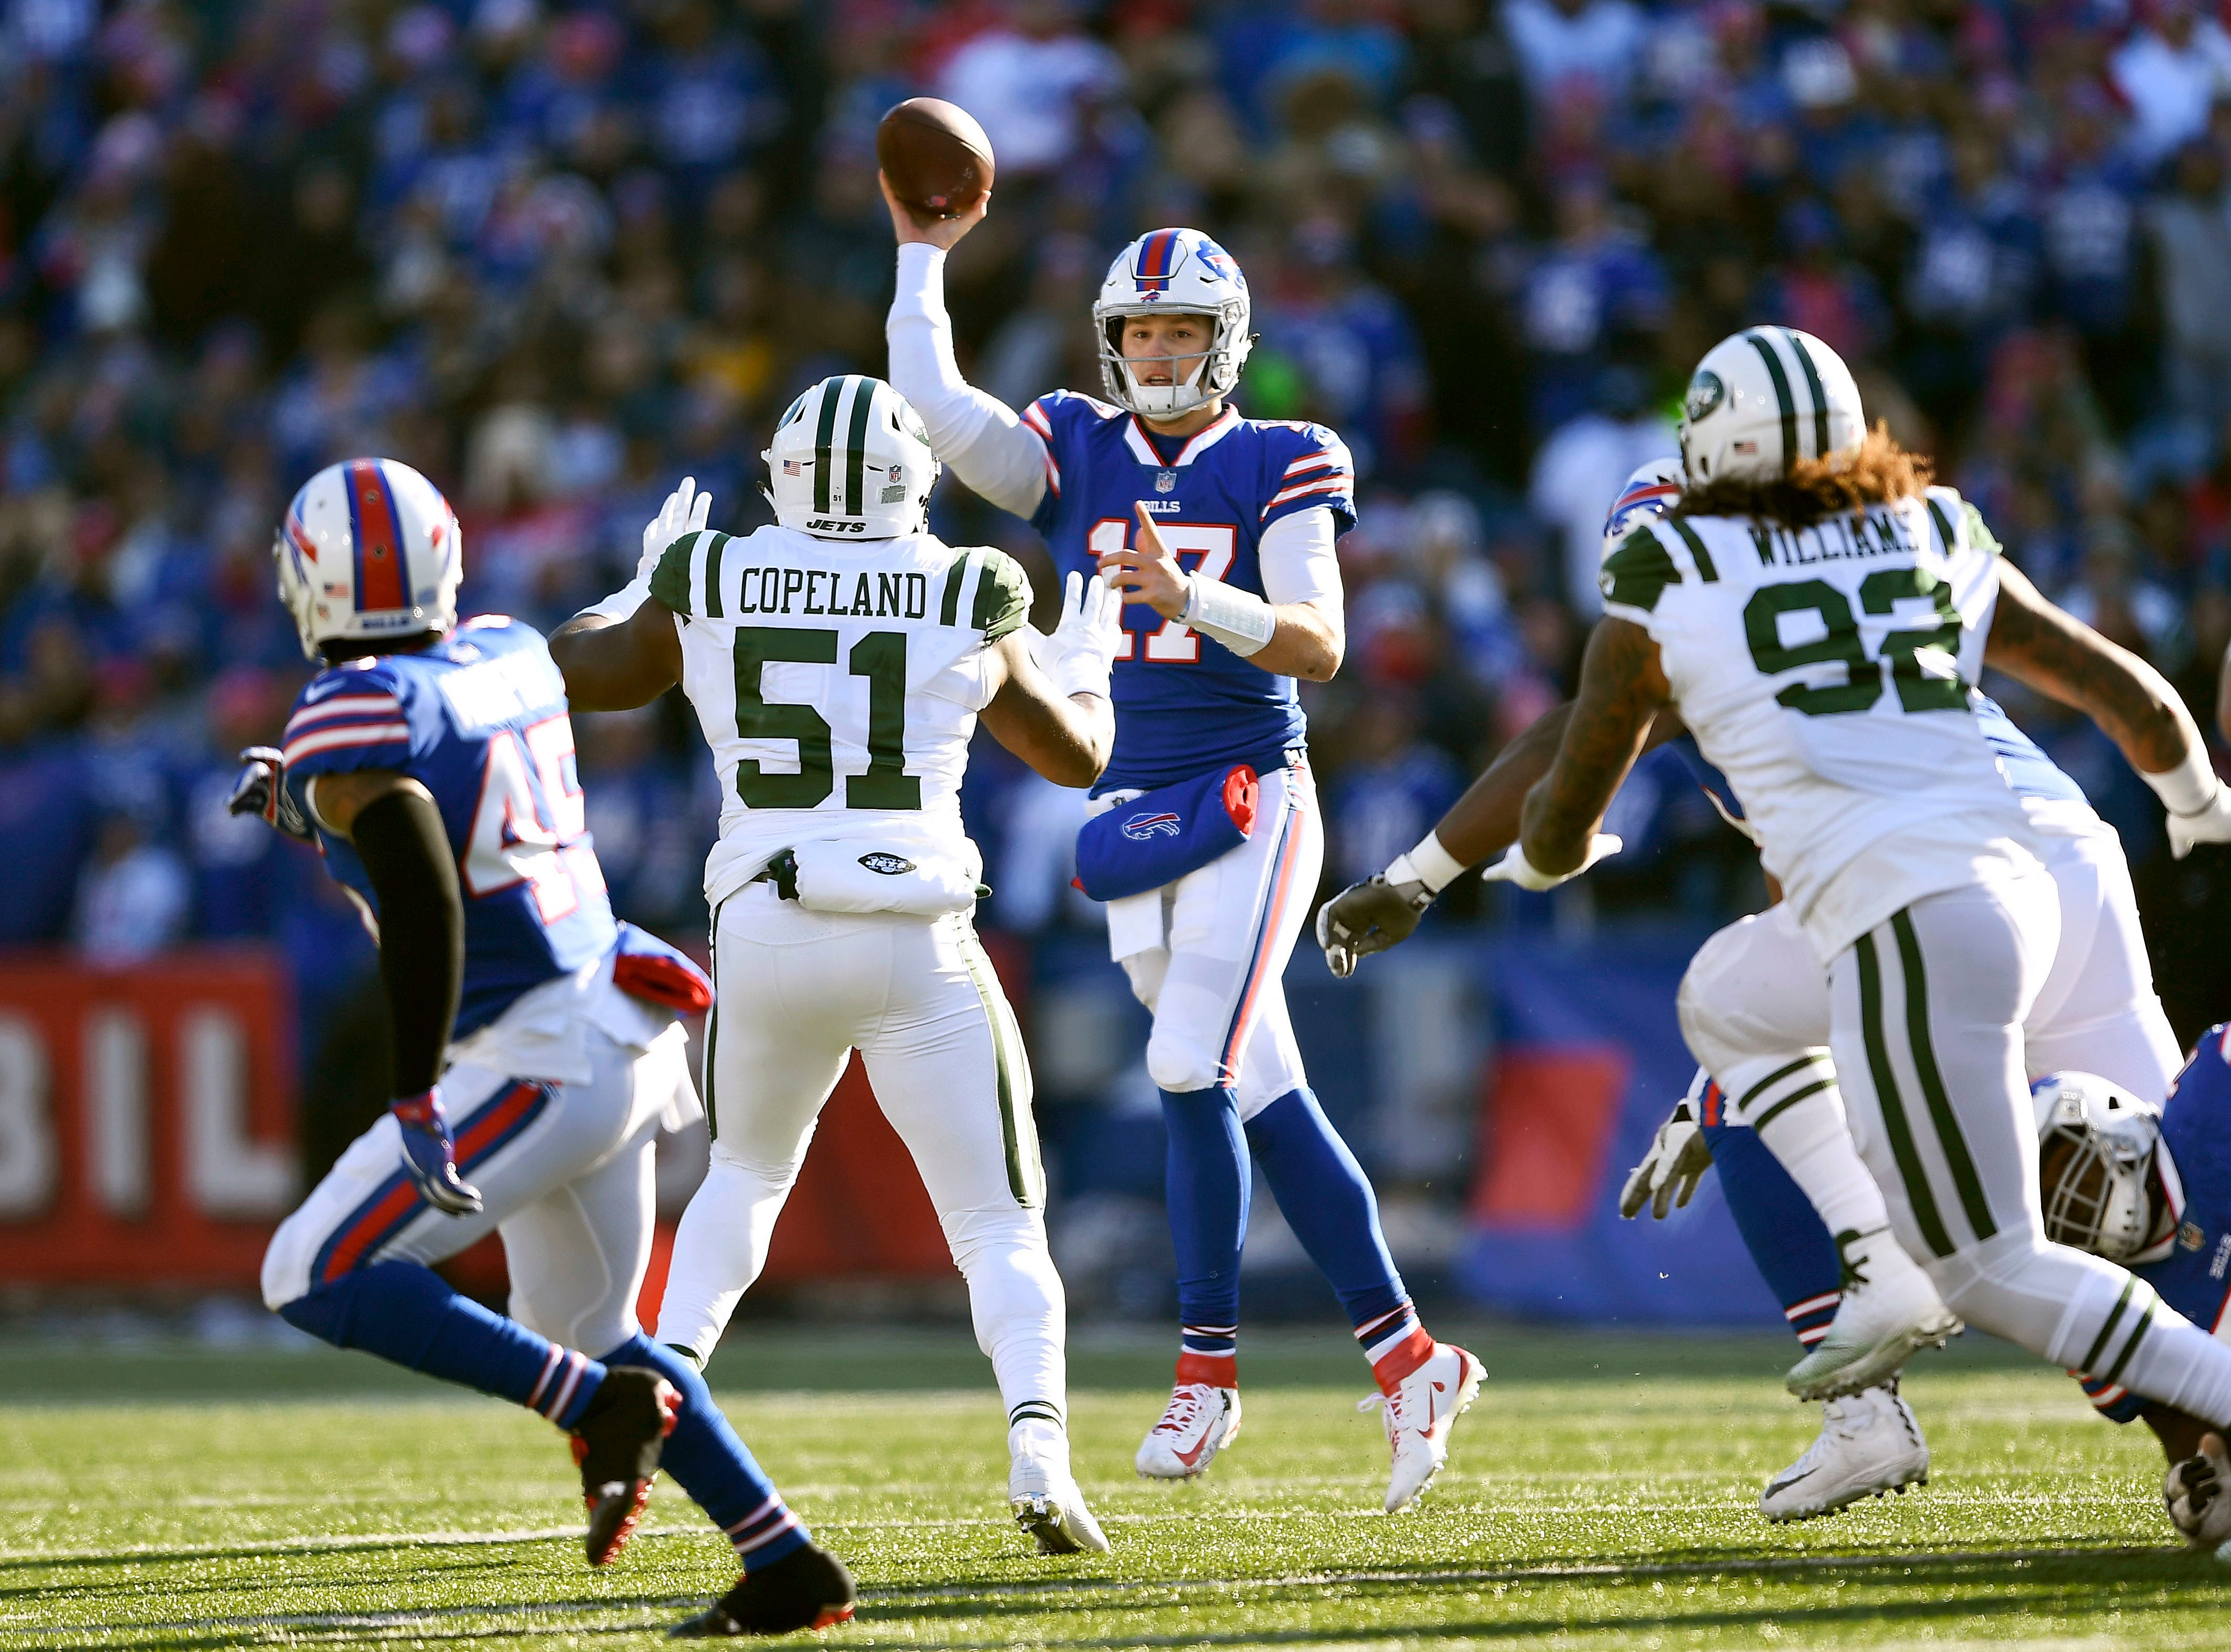 Buffalo Bills quarterback Josh Allen (17) passes under pressure from New York Jets defenders Brandon Copeland (51) and Leonard Williams (92) to running back Marcus Murphy, left, during the first half of an NFL football game, Sunday, Dec. 9, 2018, in Orchard Park, N.Y. (AP Photo/Adrian Kraus)